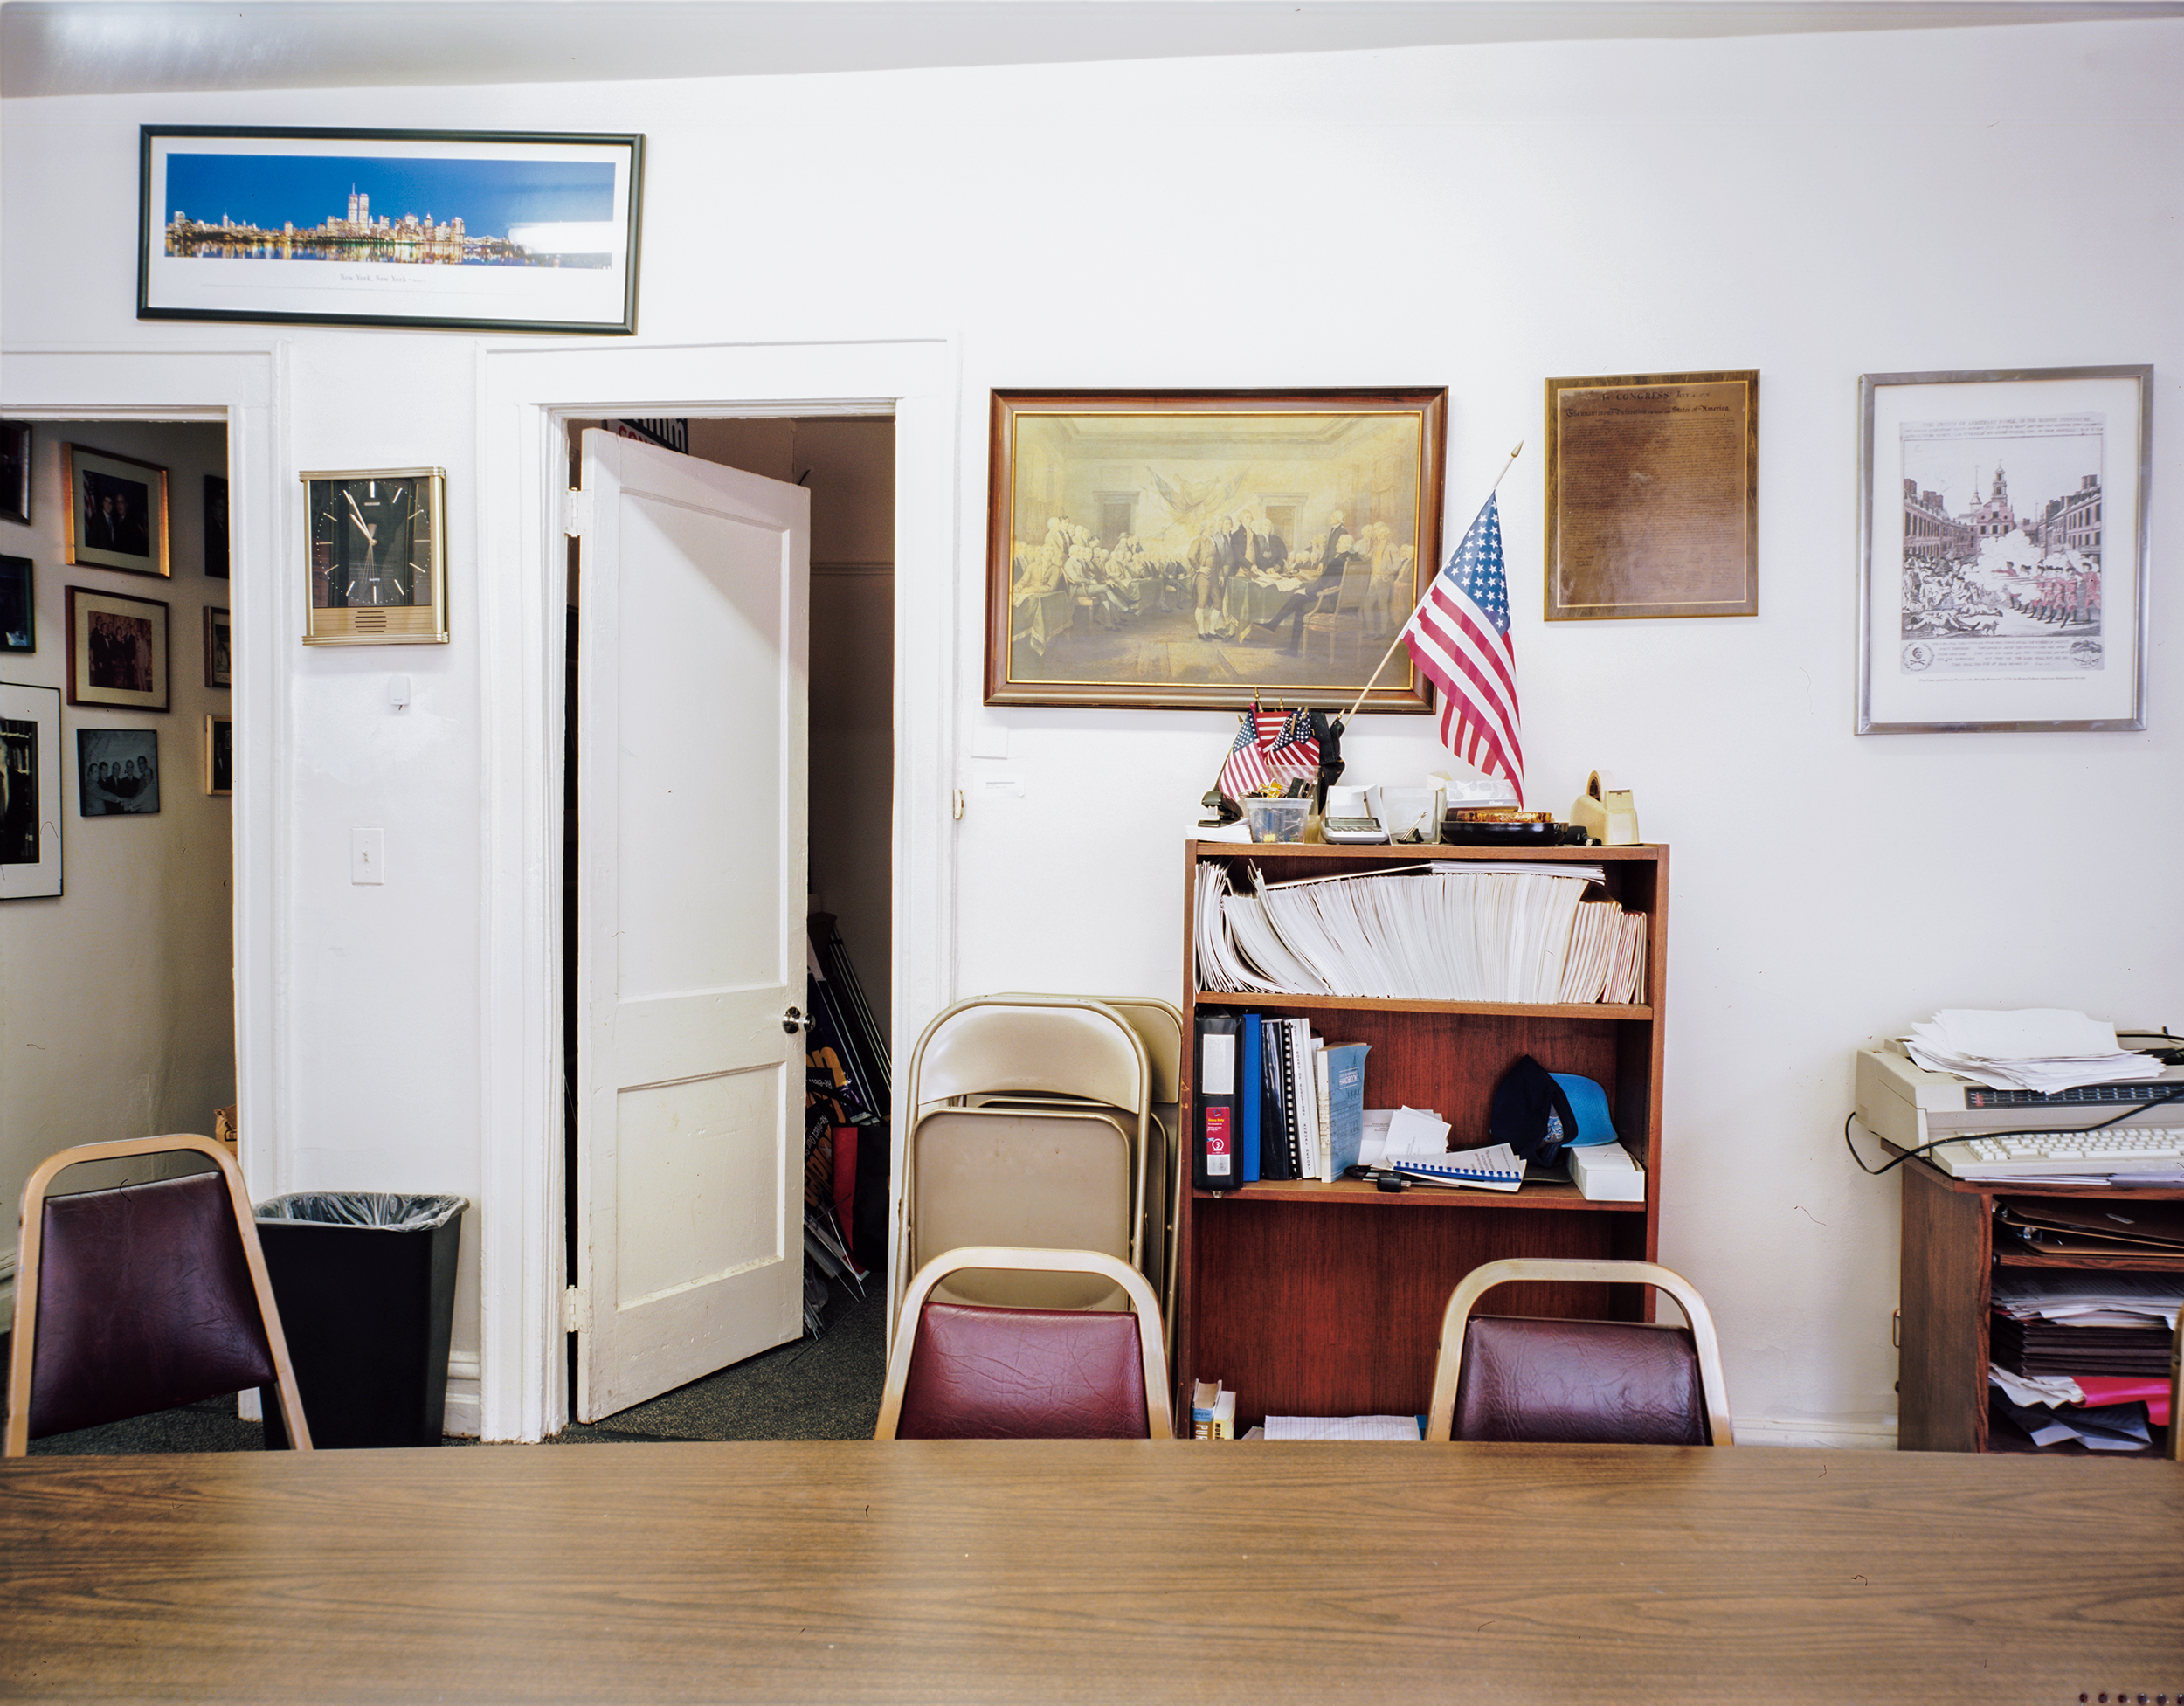 The meeting room of the Conservative Party of New York State.